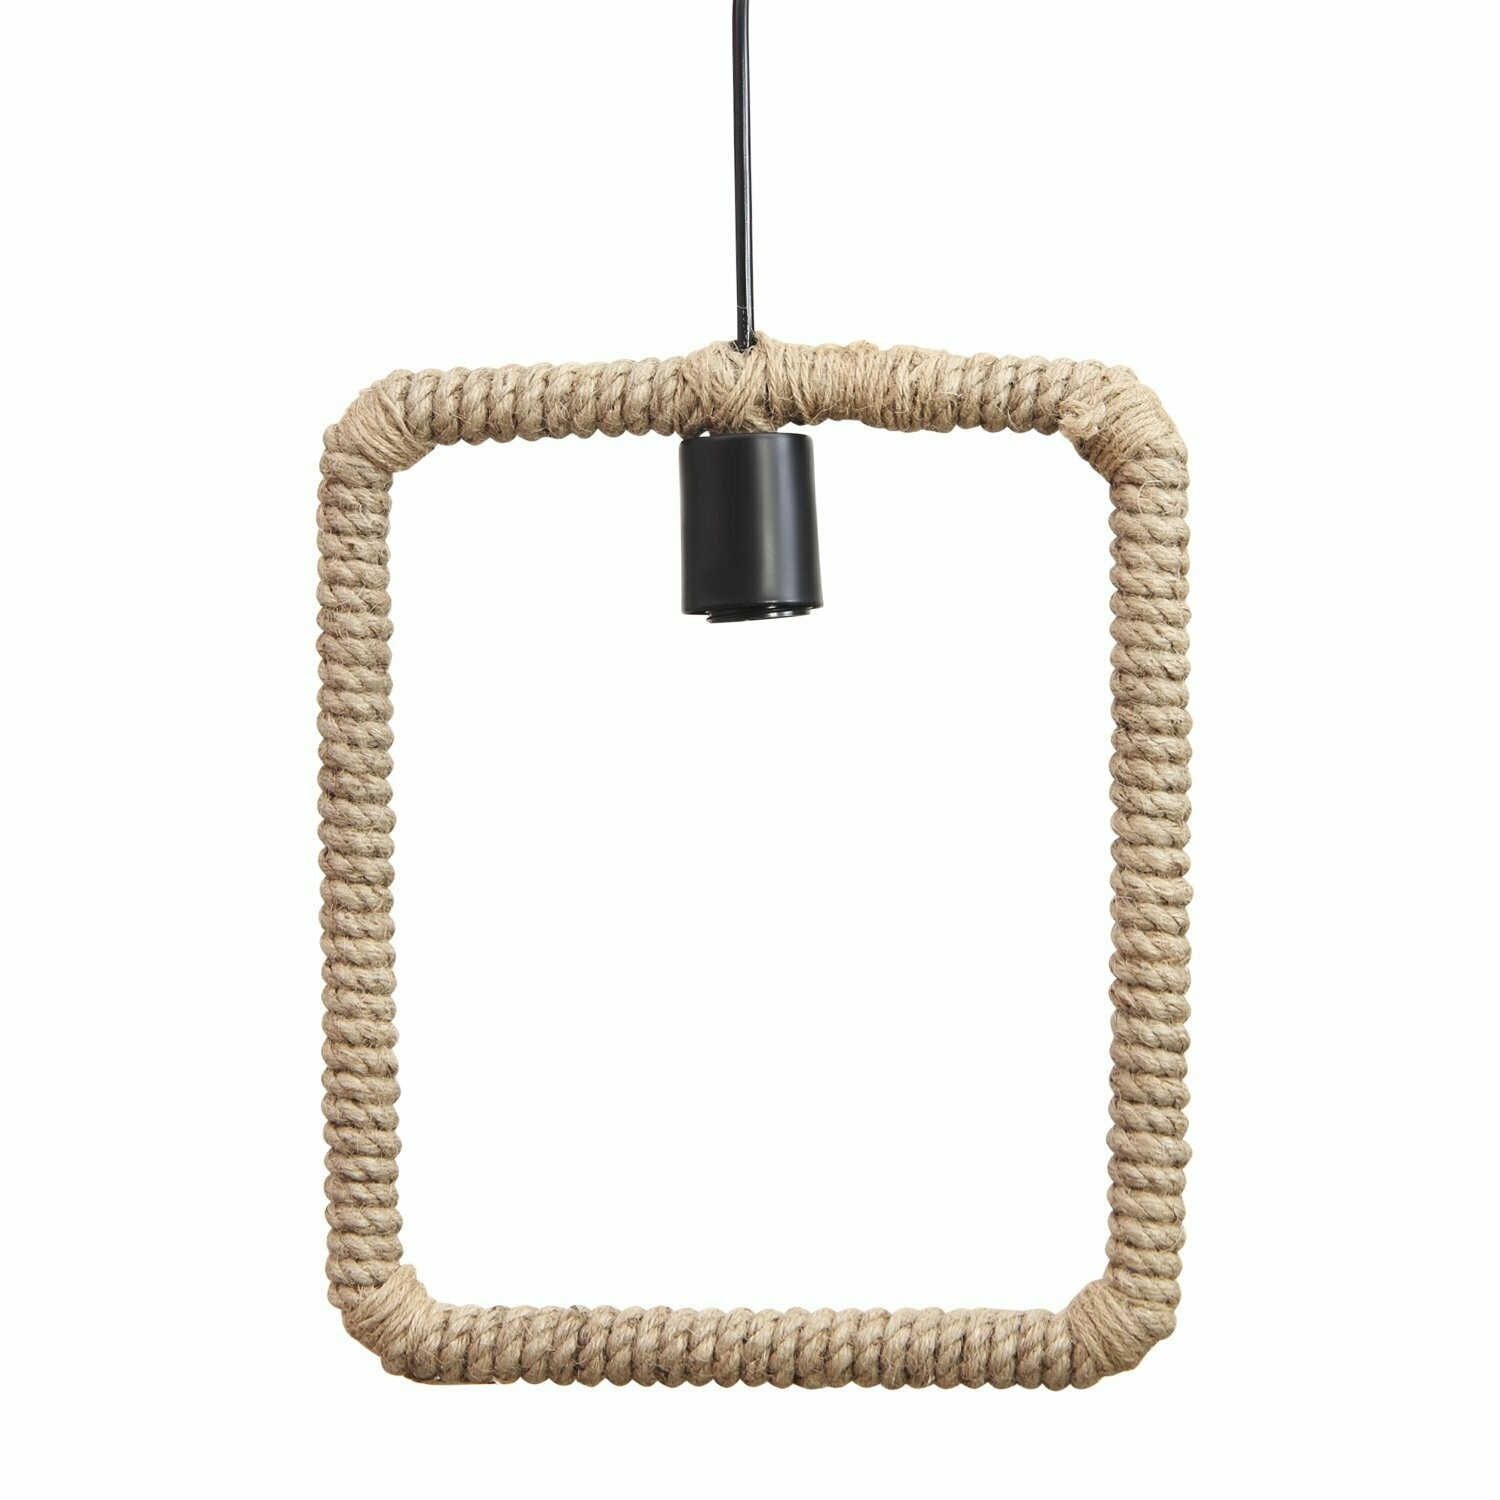 Square Rope Hanging Pendant Light